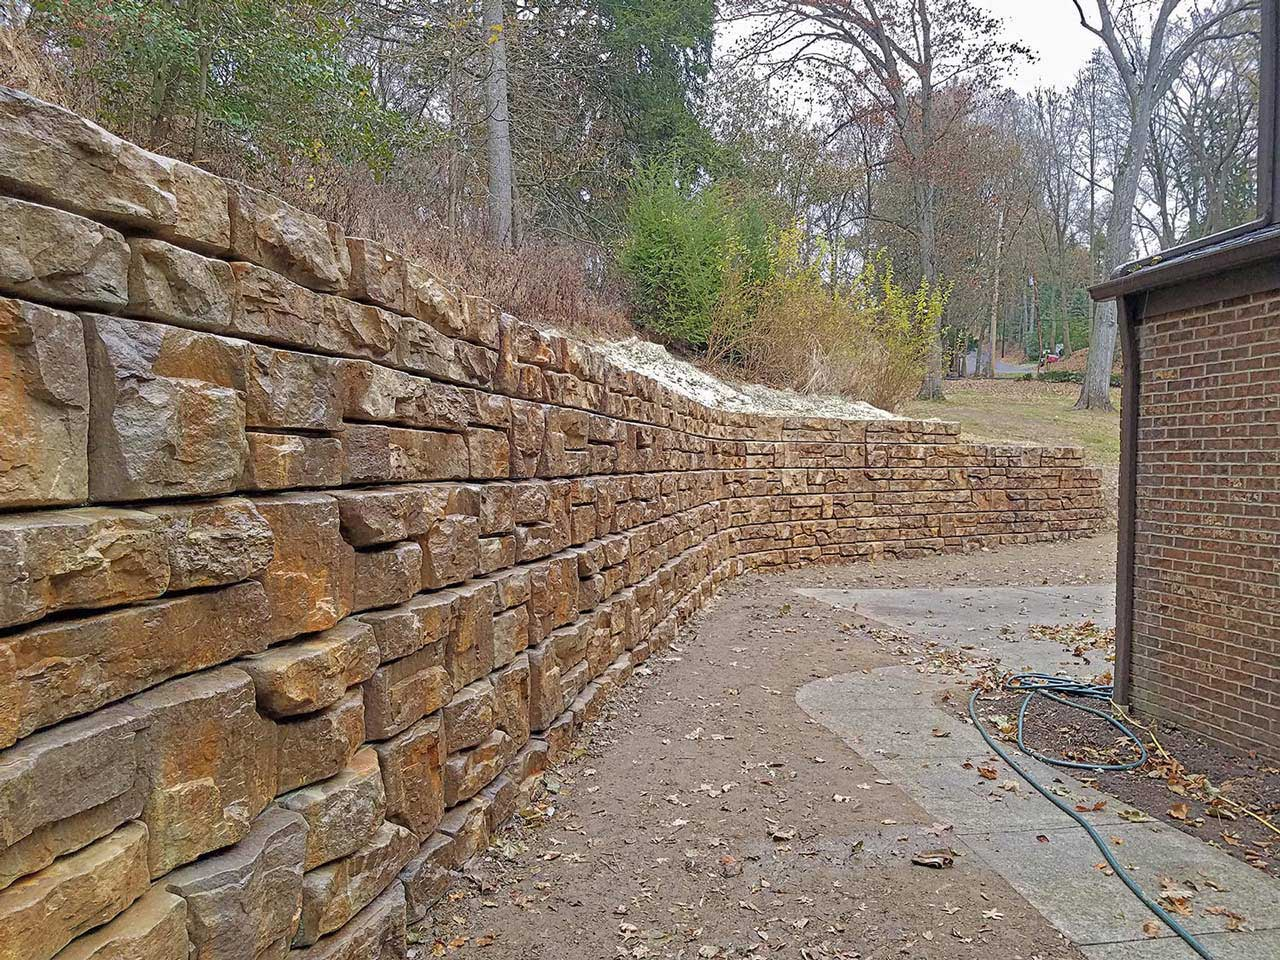 How To Make Residential Redi Rock Walls Blend In To Nature